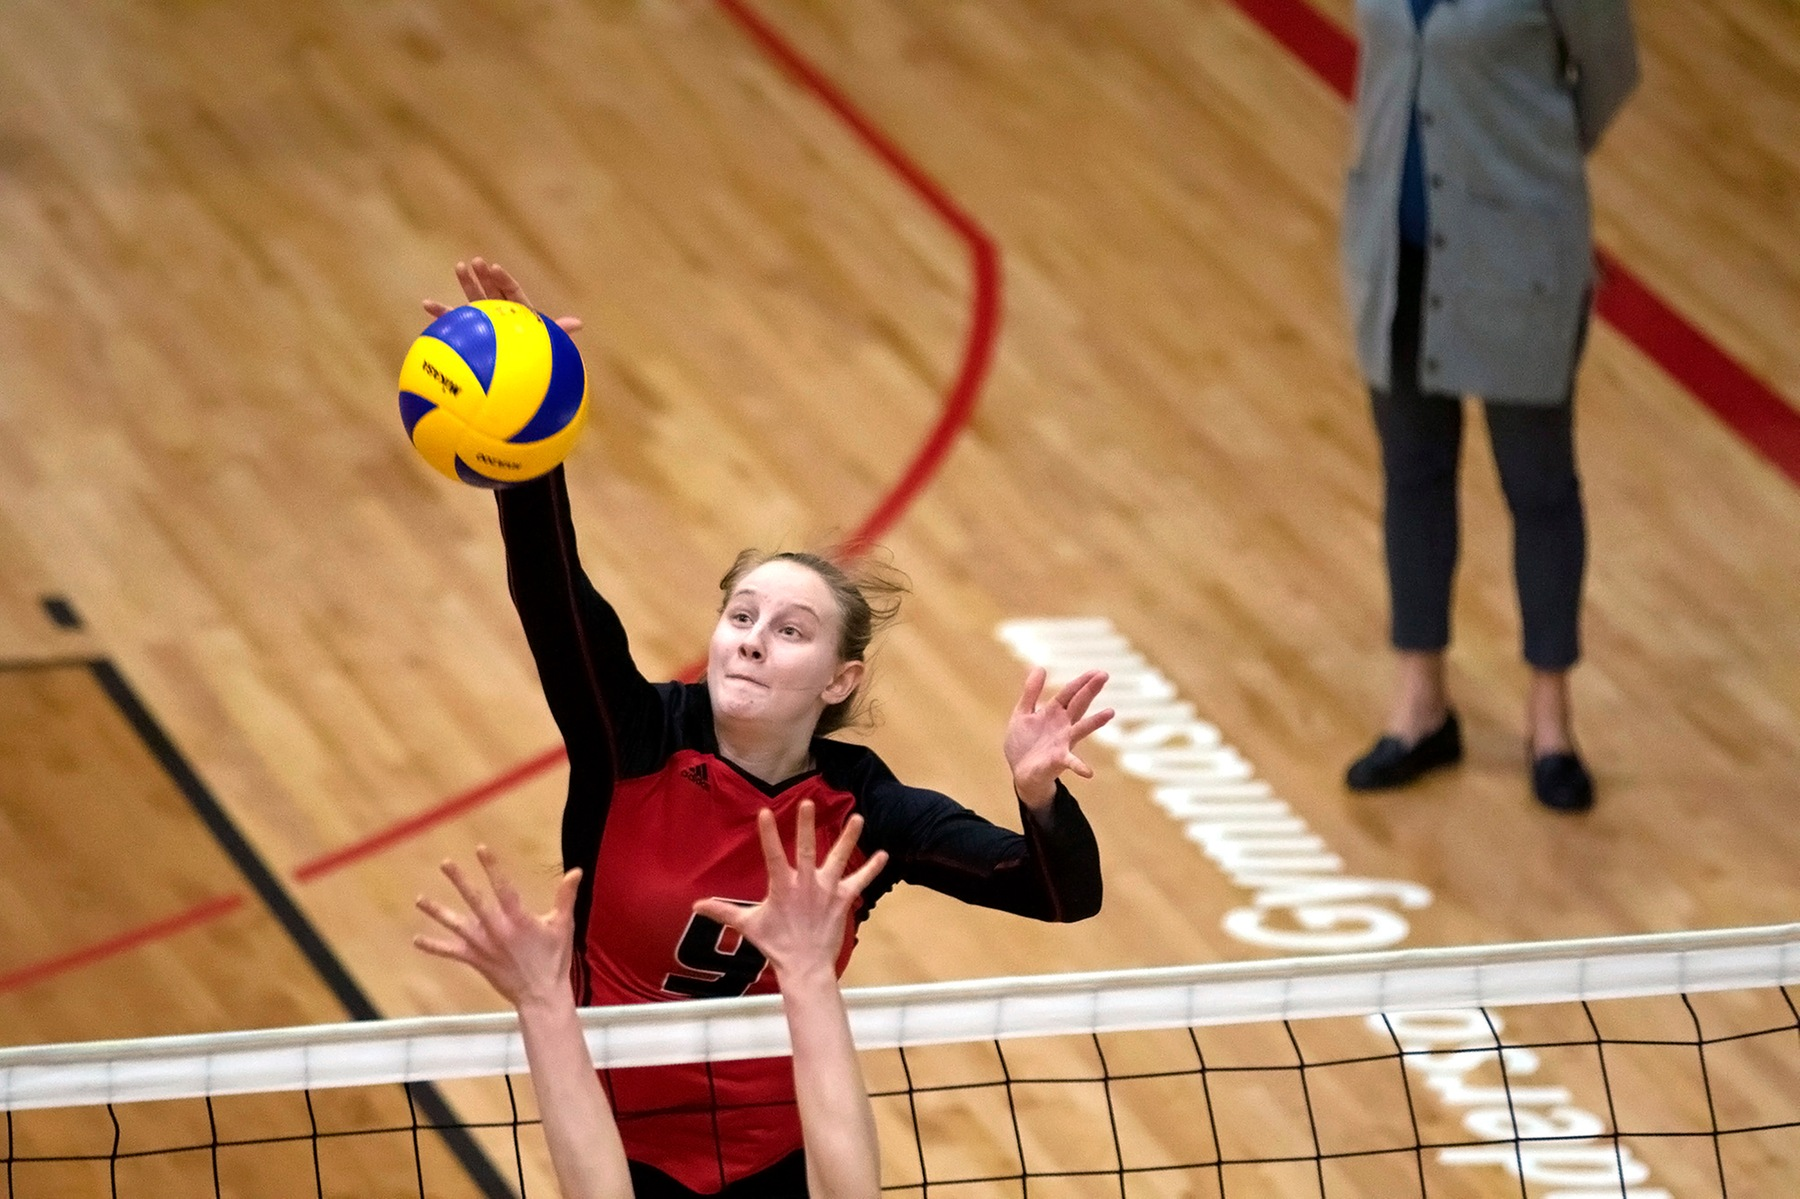 Wesmen left side Emma Parker swings against the Alberta Pandas during Canada West women's volleyball action, Friday, February 15, 2019. (David Larkins/Wesmen Athletics)